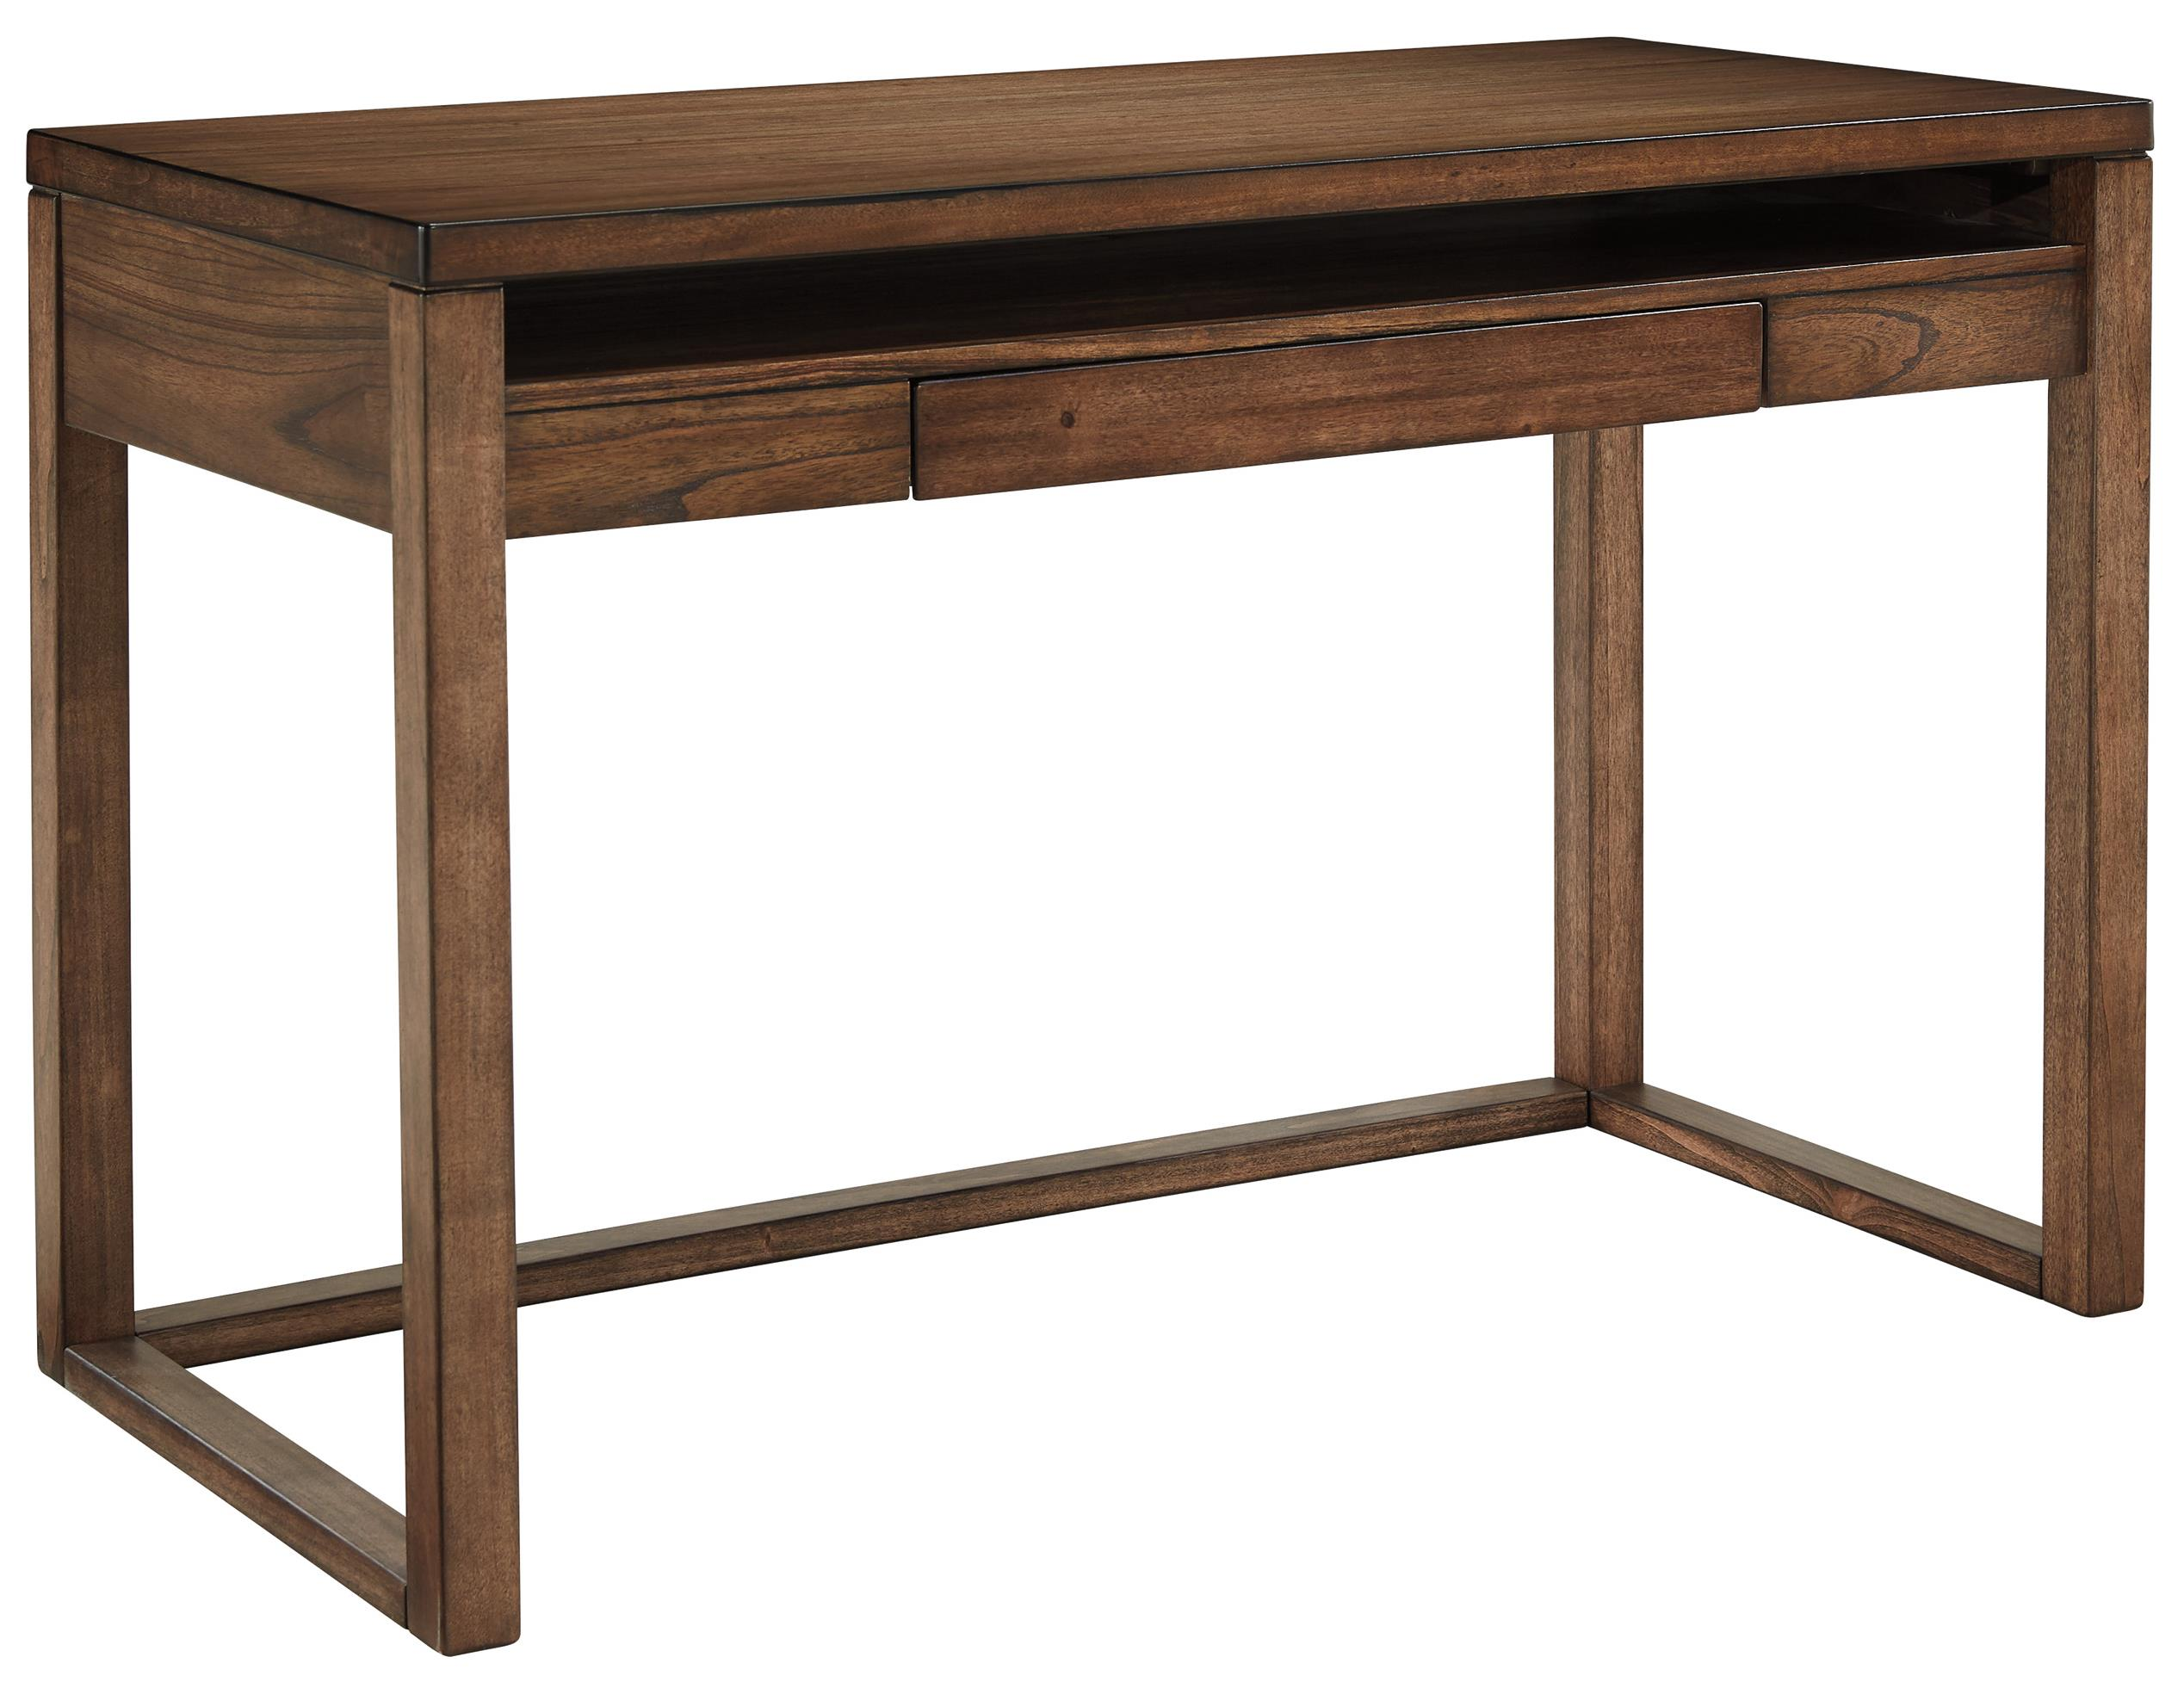 Signature Design by Ashley Baybrin Home Office Small Desk - Item Number: H587-10